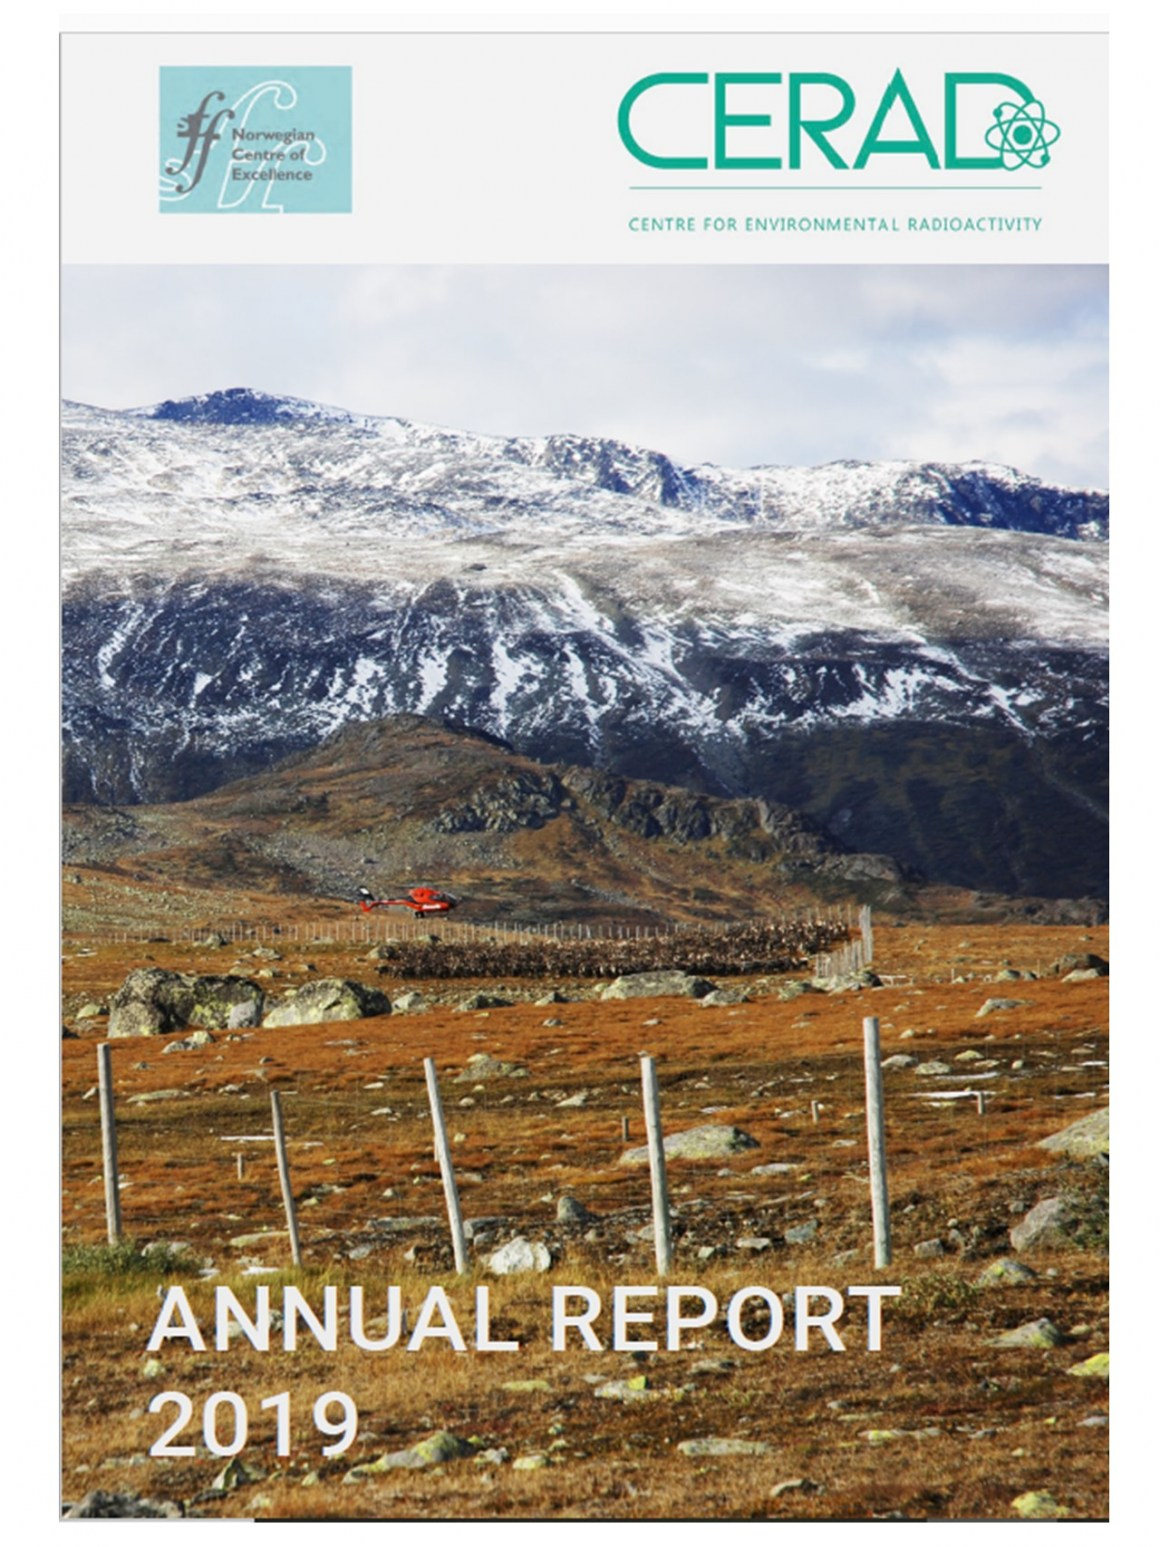 CERAD Annual Report 2019